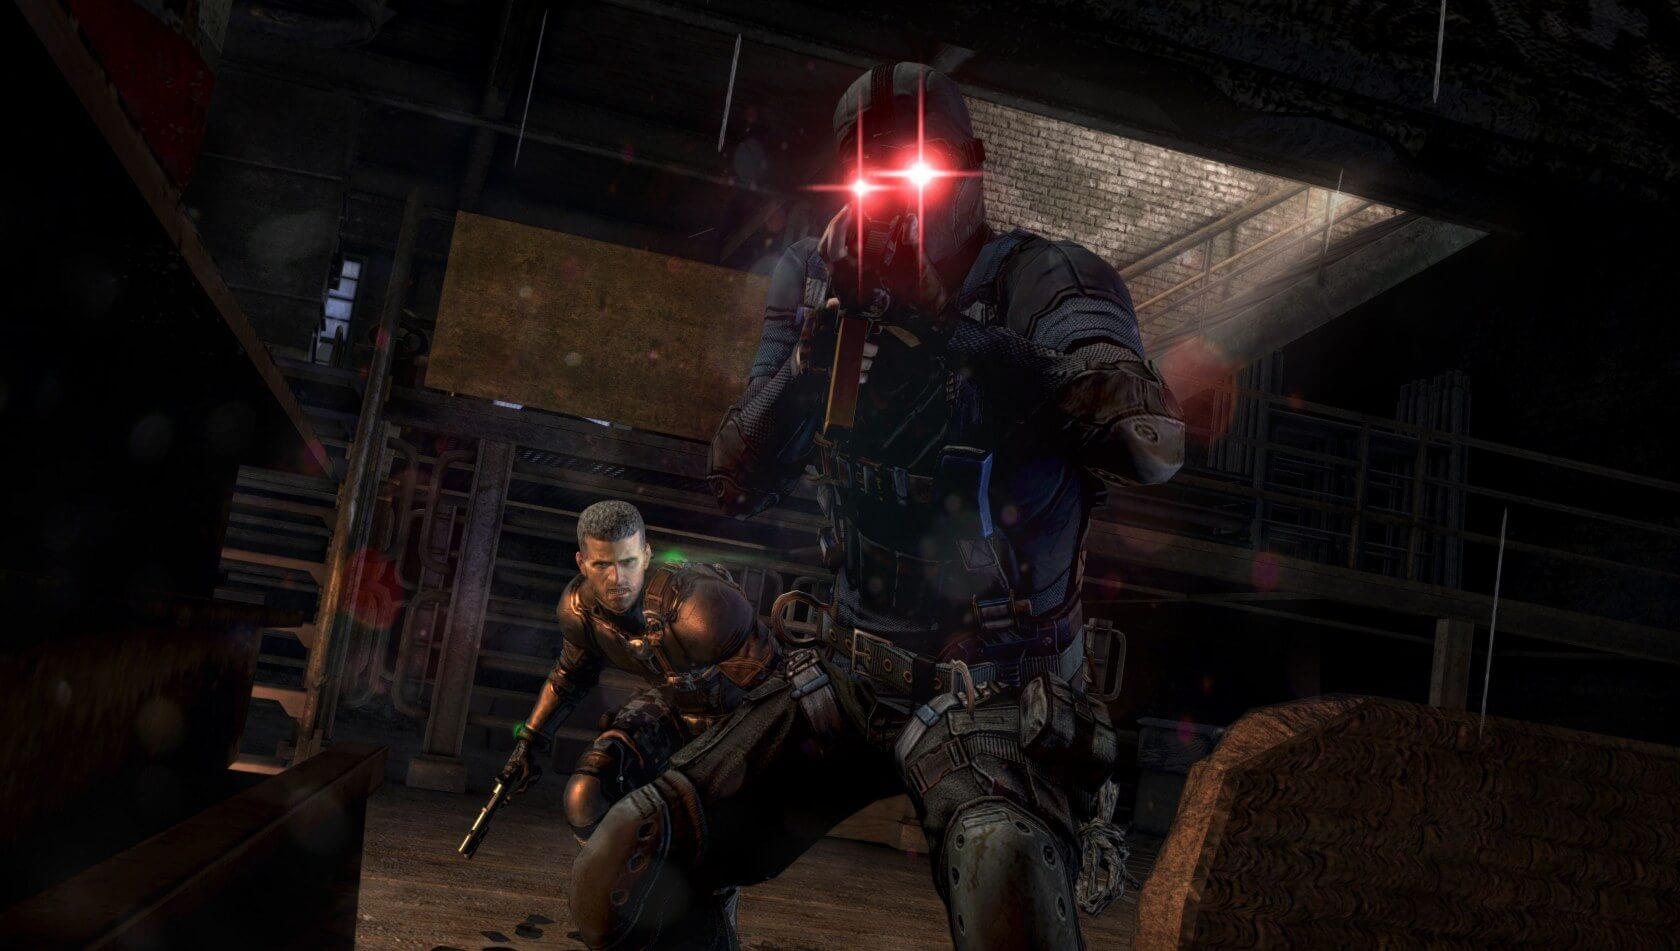 Netflix has reportedly landed a deal to produce a Splinter Cell anime